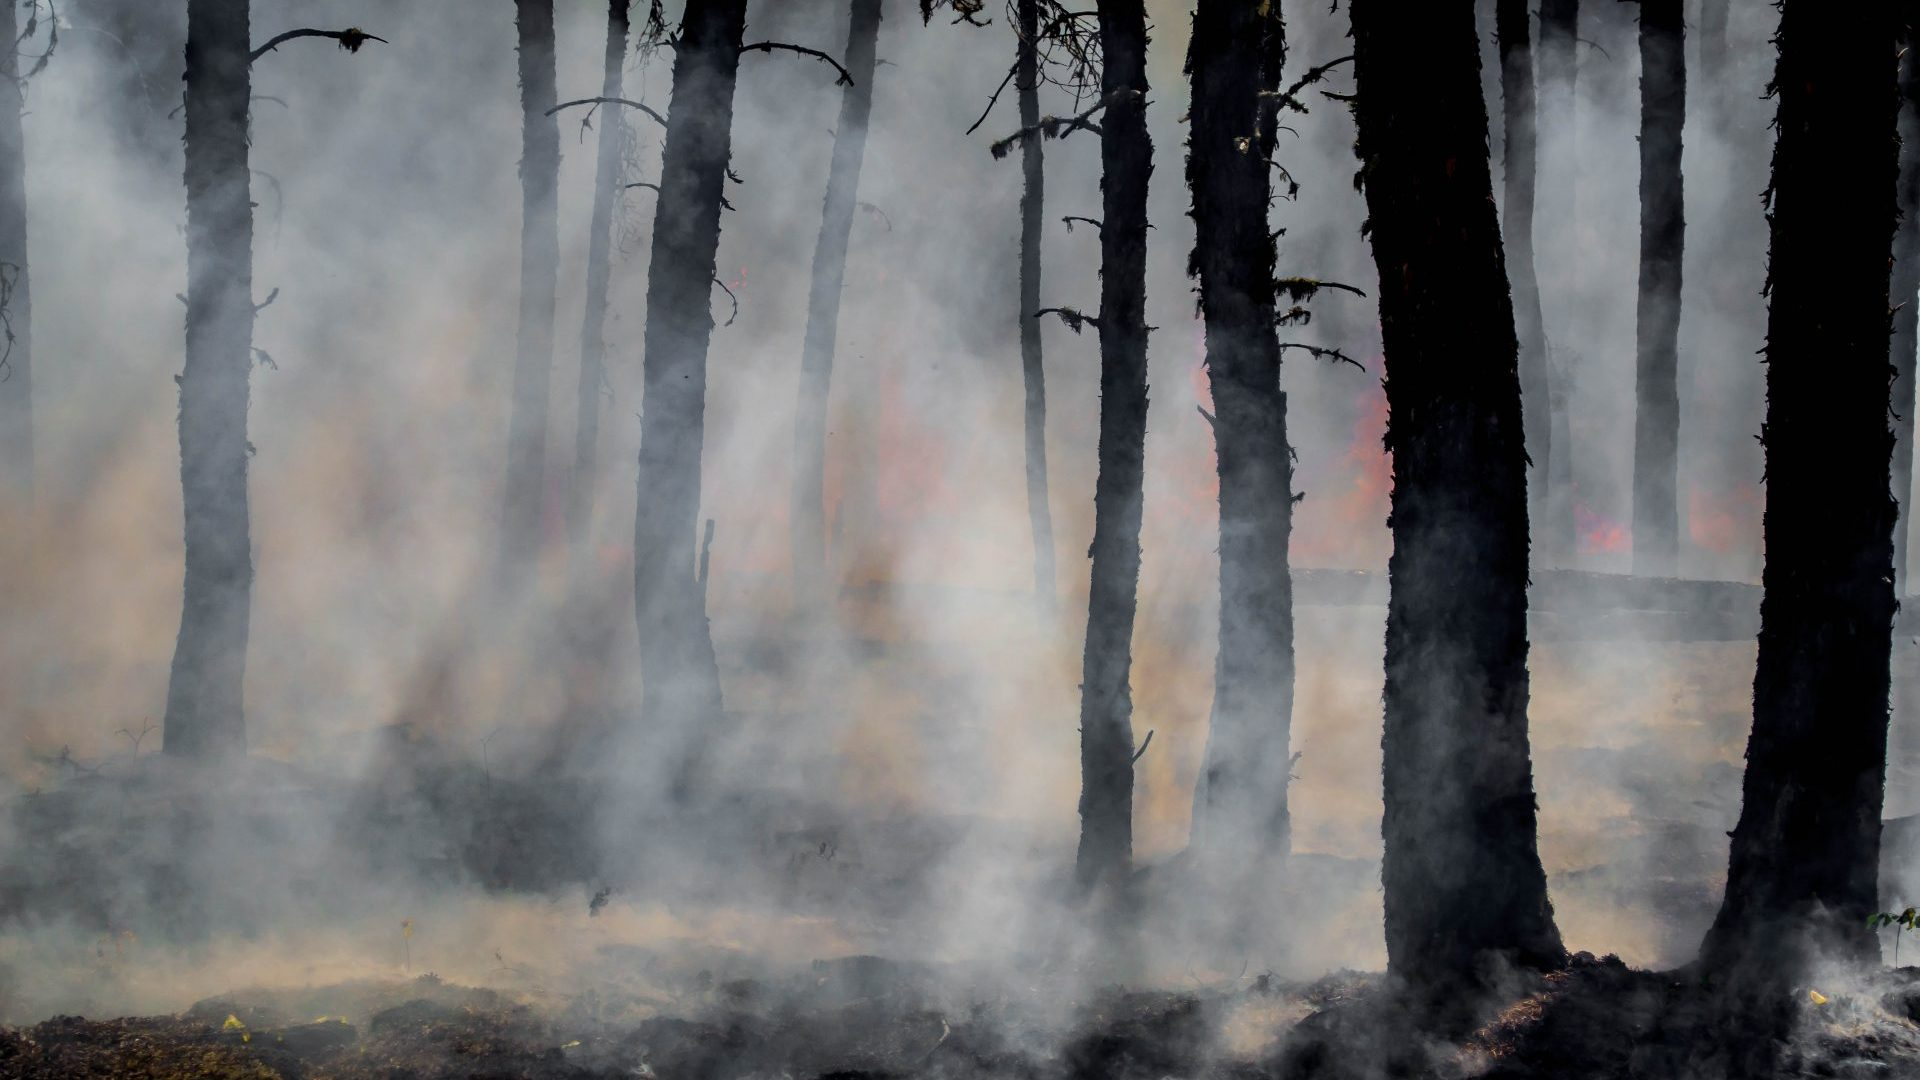 Californian forest fires linked to climate change